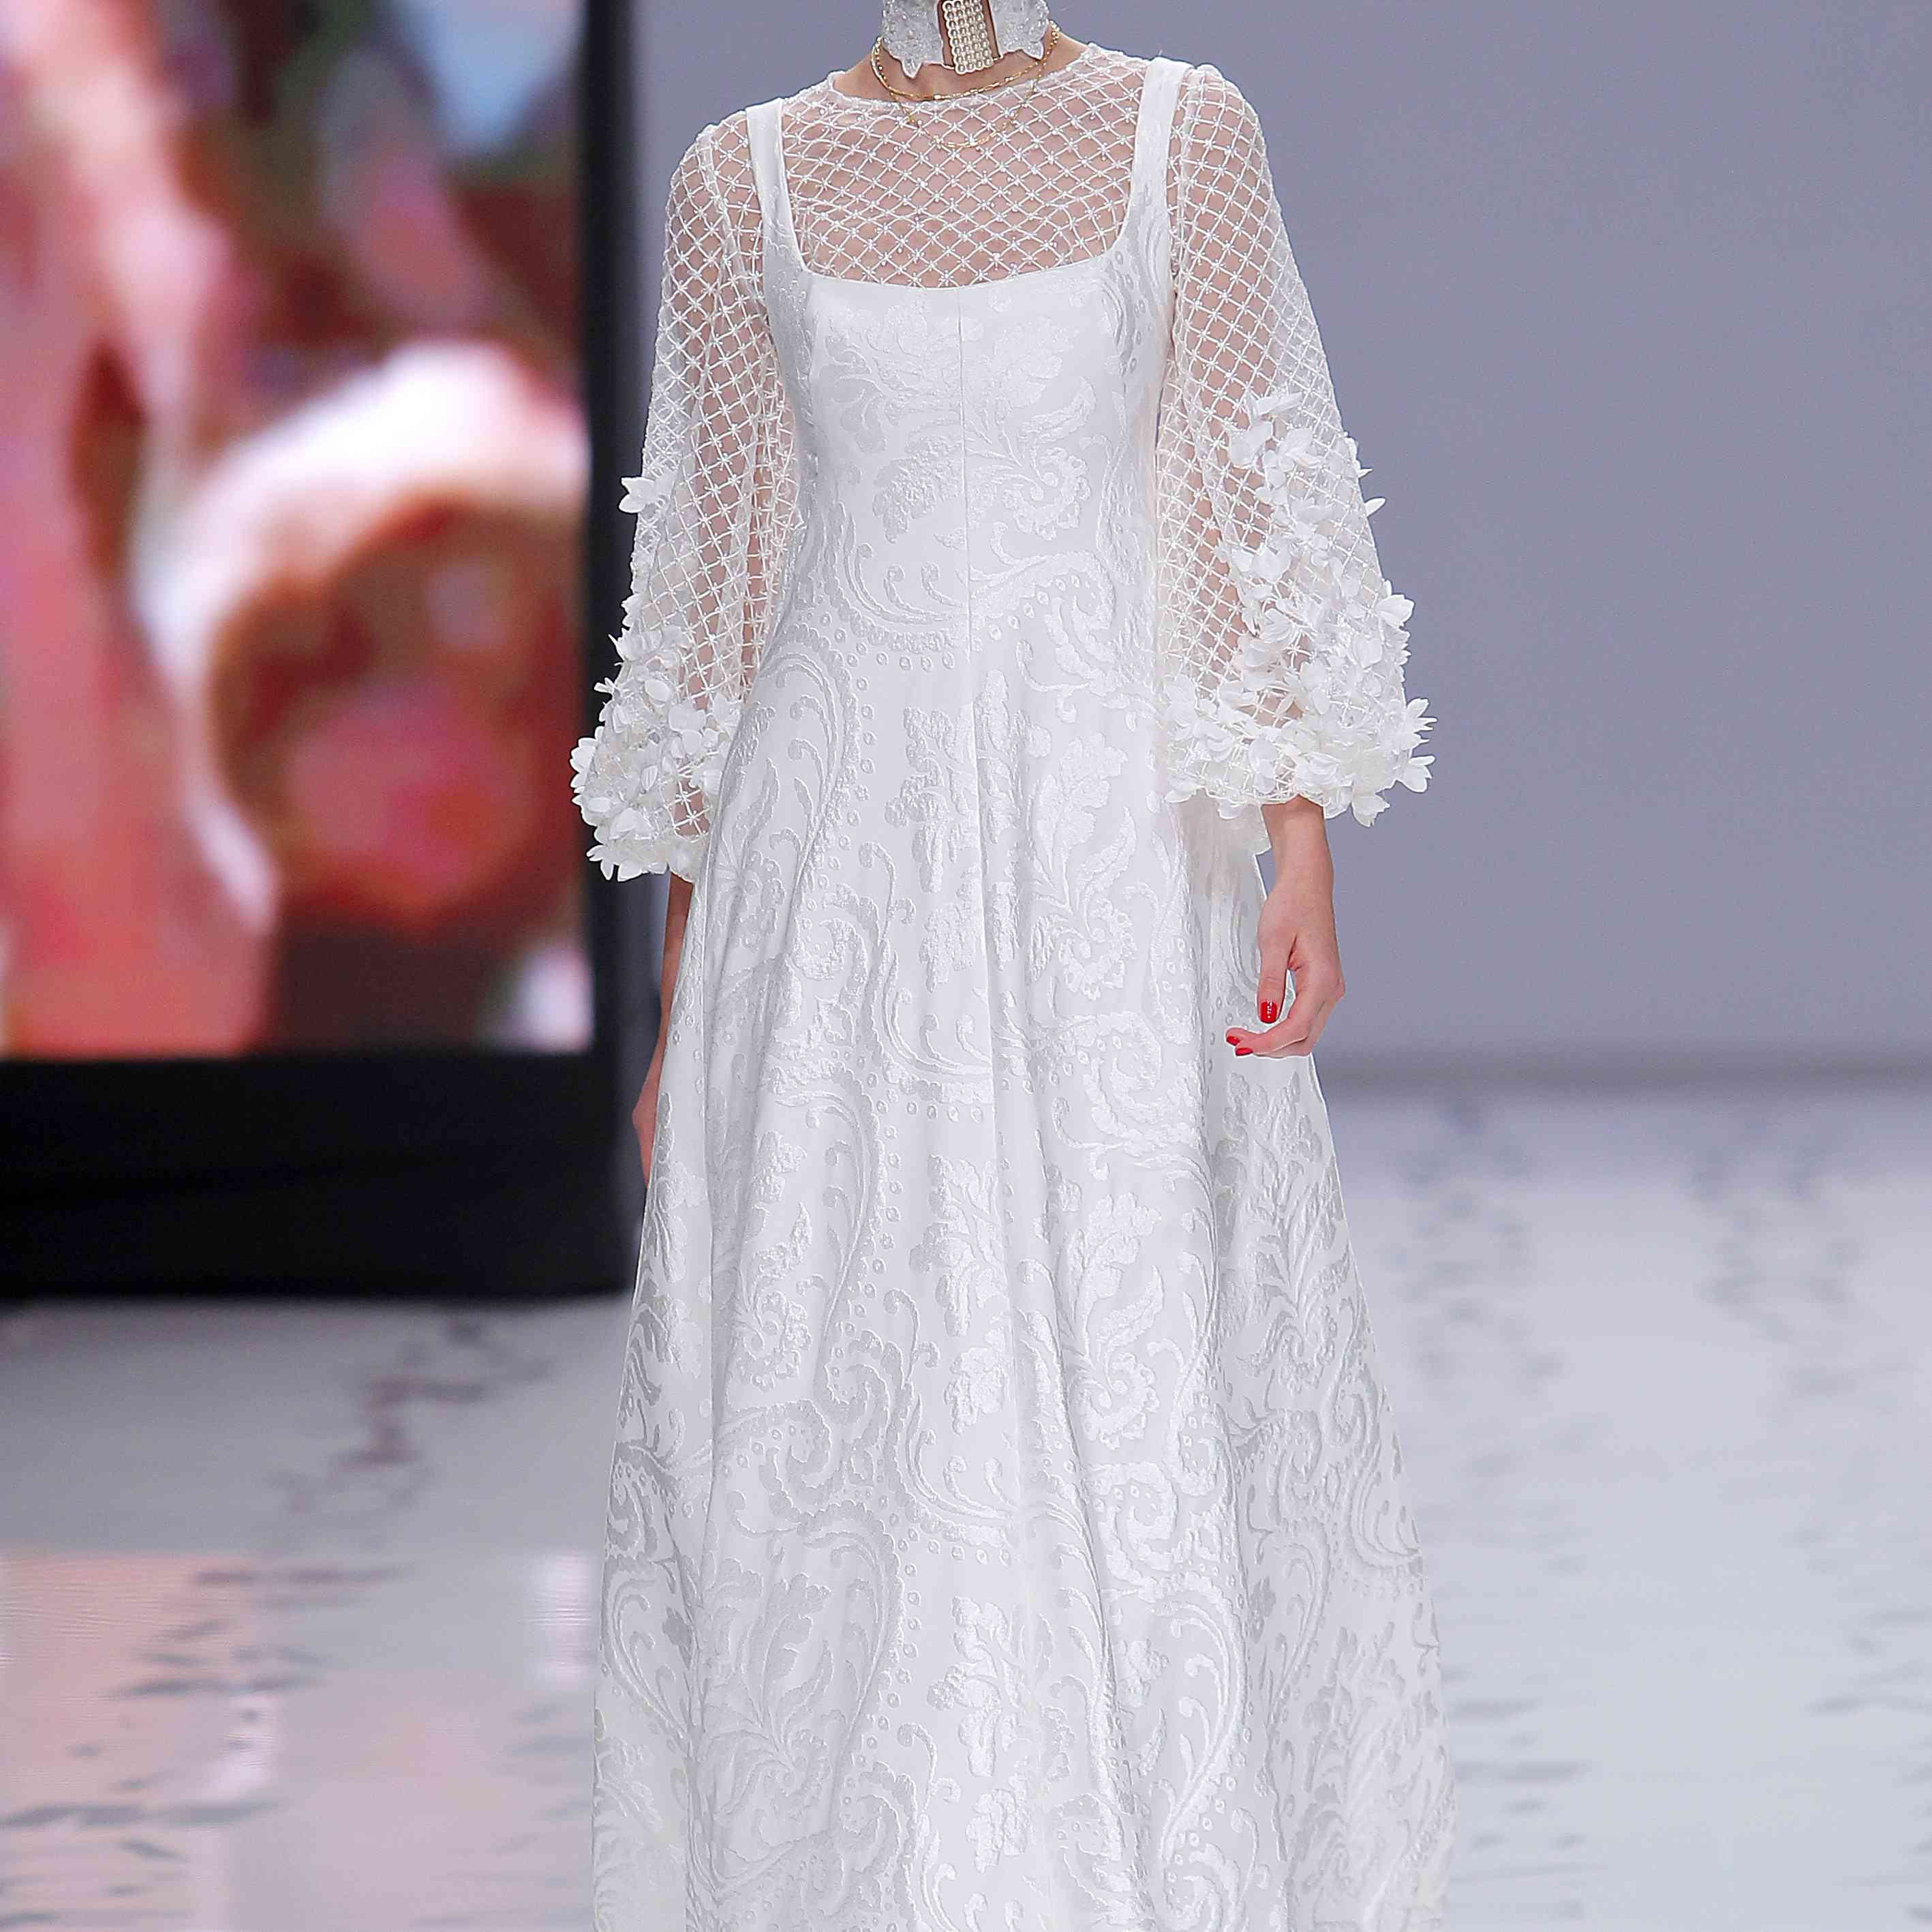 Model in white-on-white damask A-line gown with embroidered tulle puff sleeves decorated with hand-sewn 3D georgette flowers